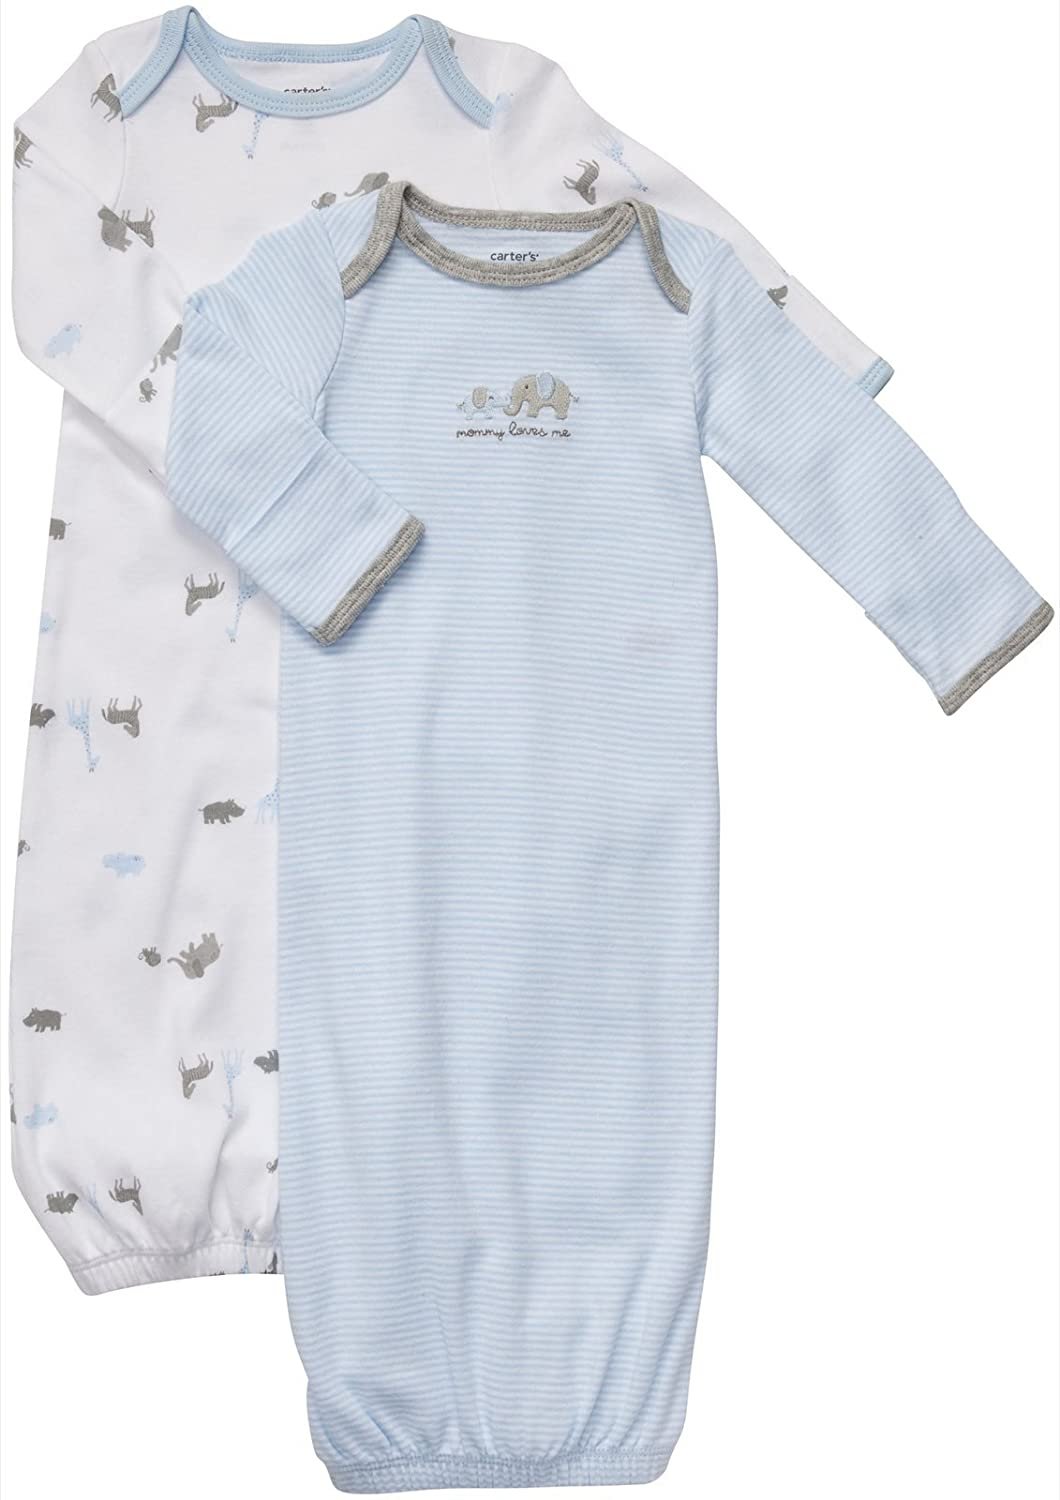 Amazon.com: Carter\'s Baby Boy\'s 2-Pack Gowns - Elephants - Newborn: Baby